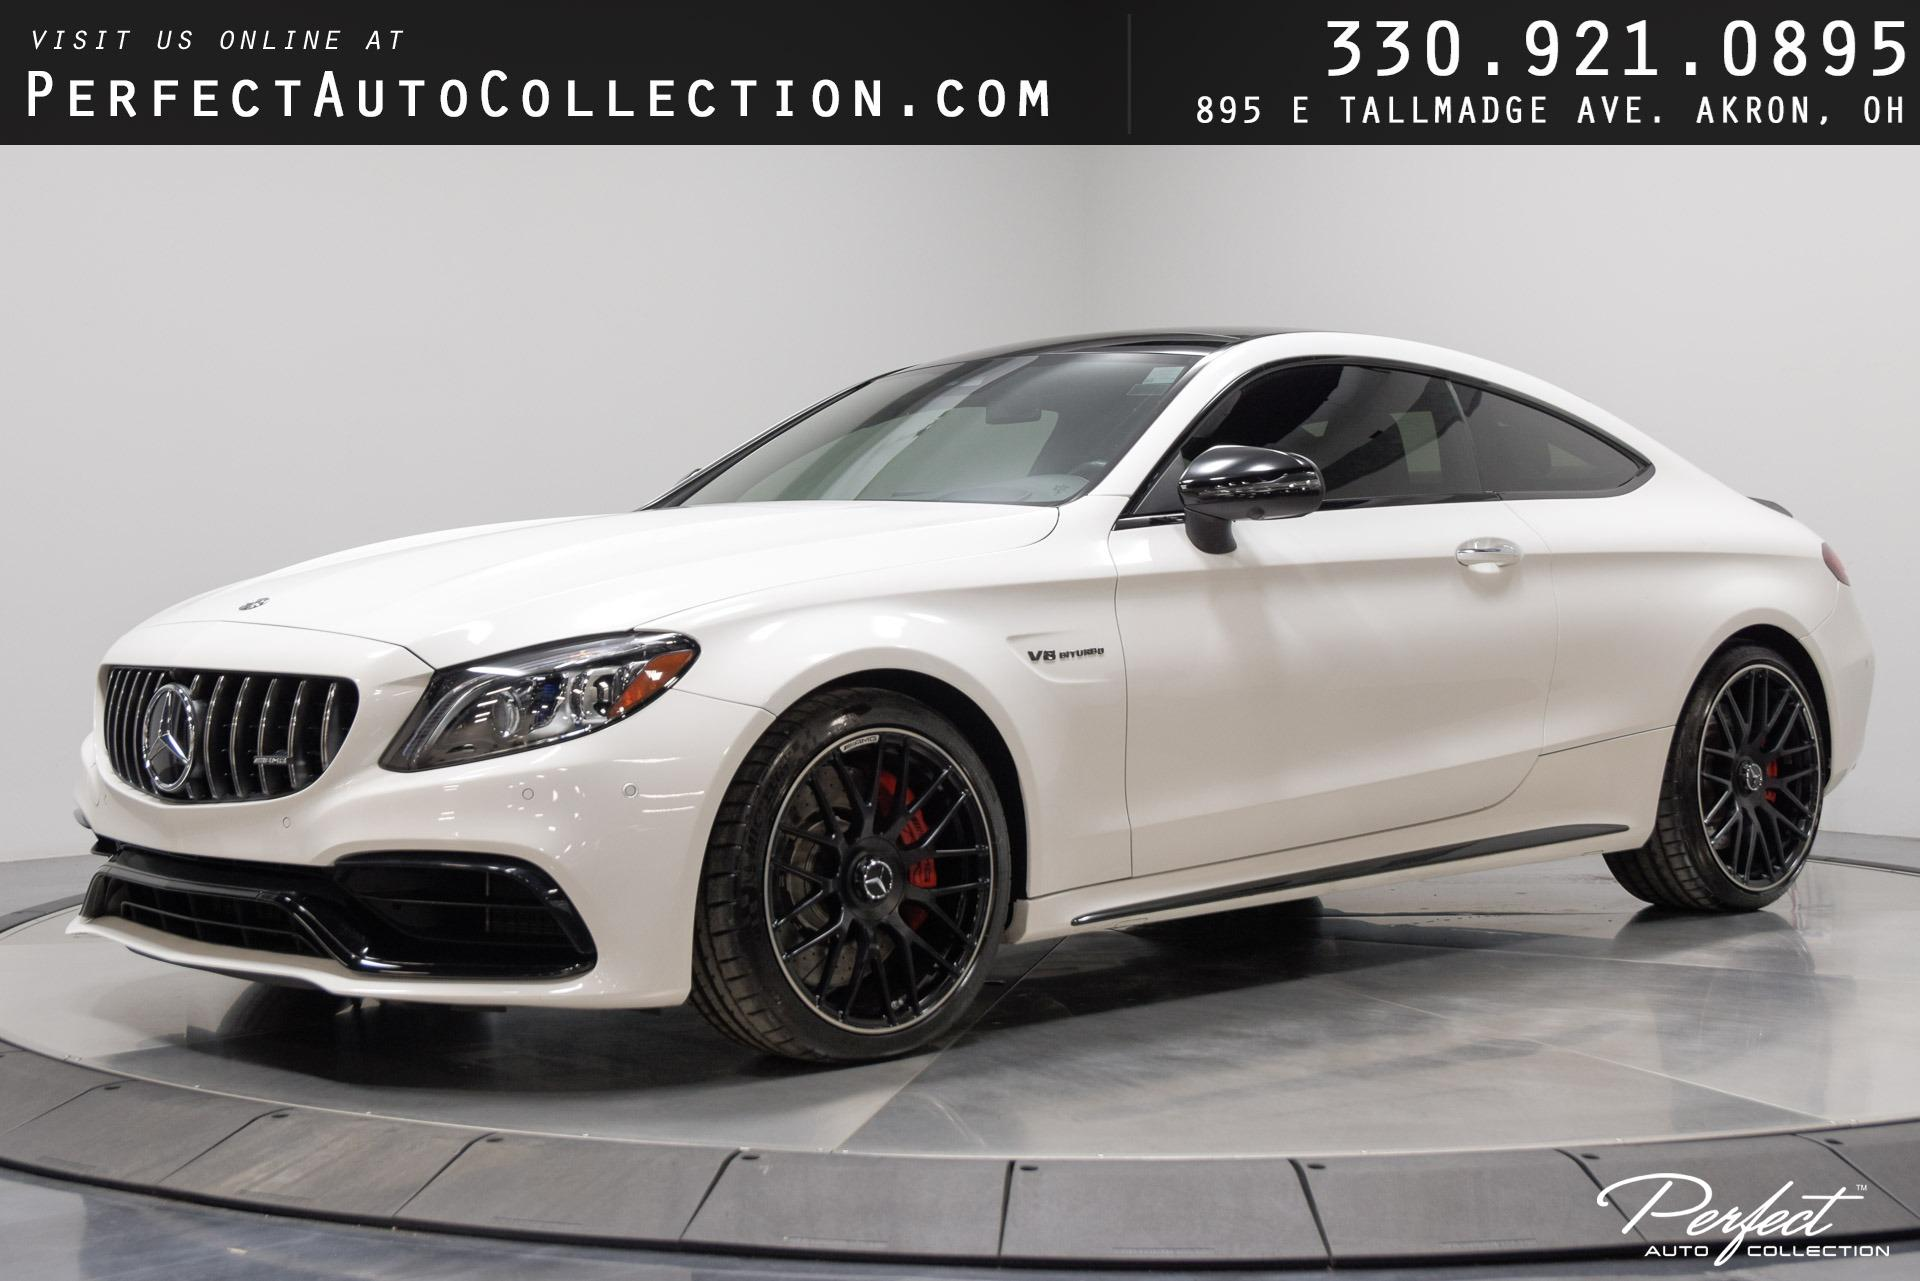 Used 2019 Mercedes-Benz C-Class AMG C 63 S for sale Sold at Perfect Auto Collection in Akron OH 44310 1